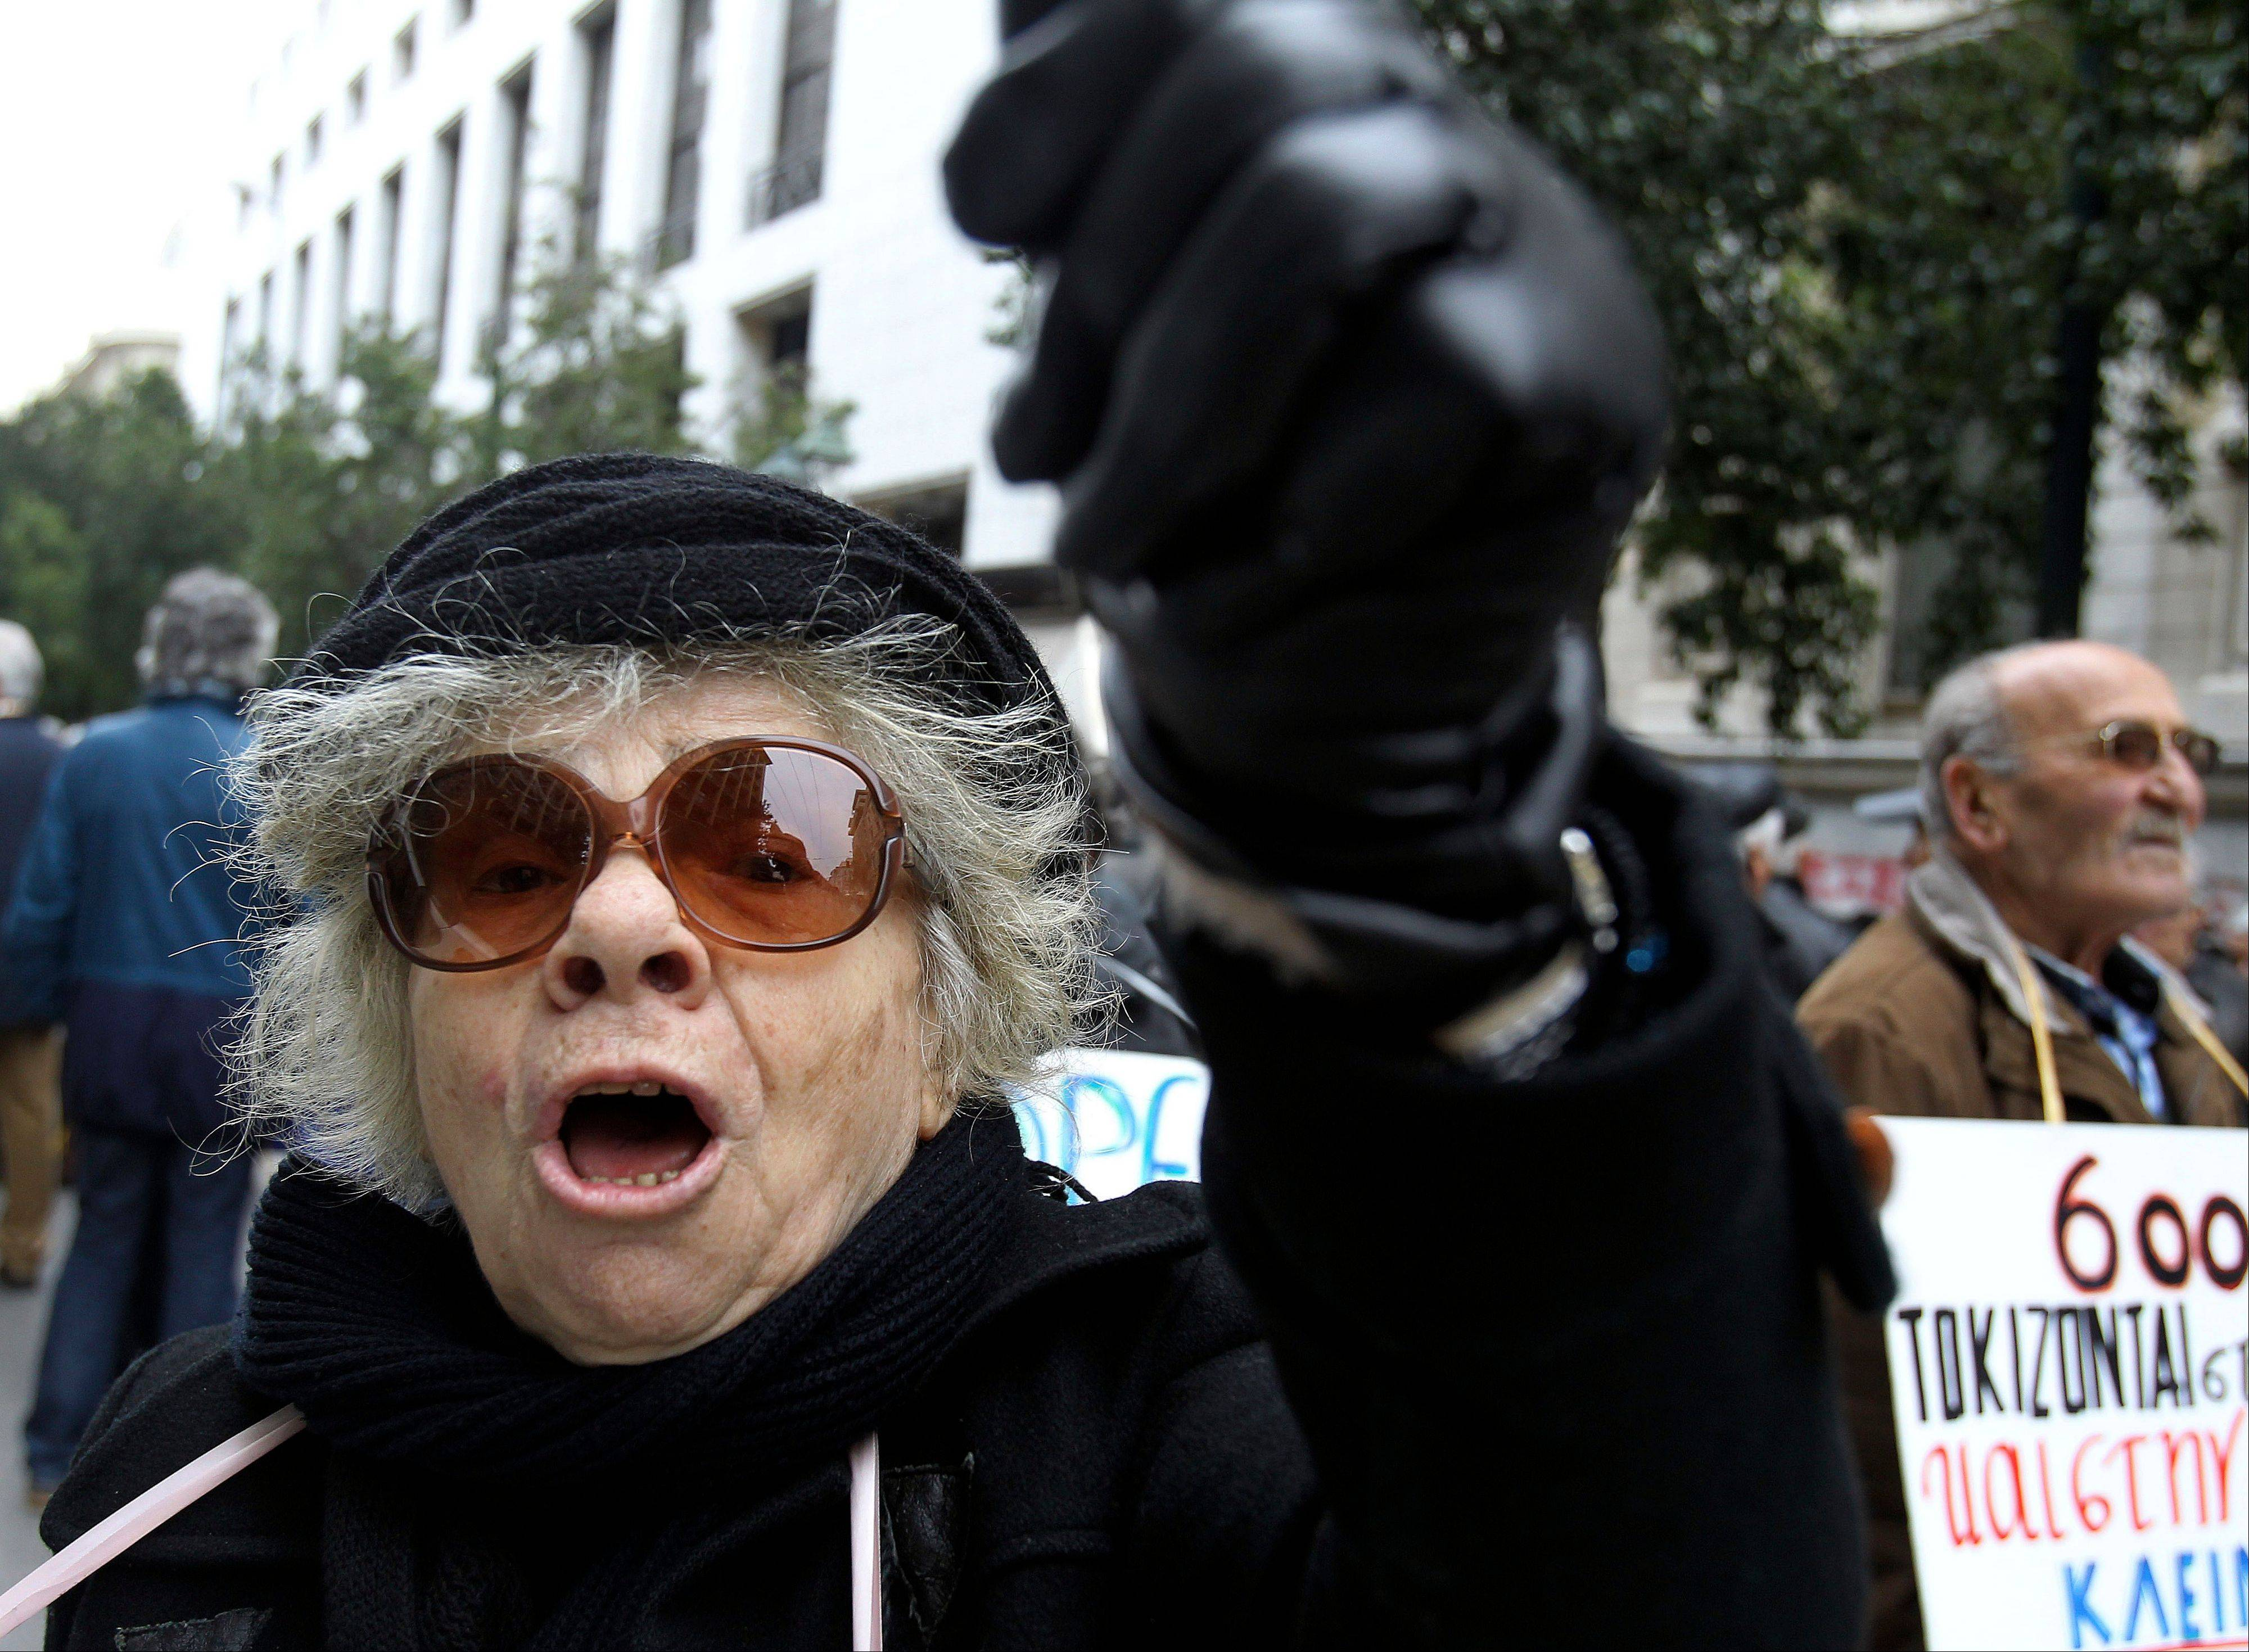 A pensioner shouts slogans during a protest against the Greek government's planned pension cut, outside Labor Ministry in Athens. Resentful stereotypes are increasingly jumping from pub conversation and tabloid pages into the mainstream political discourse in Europe.